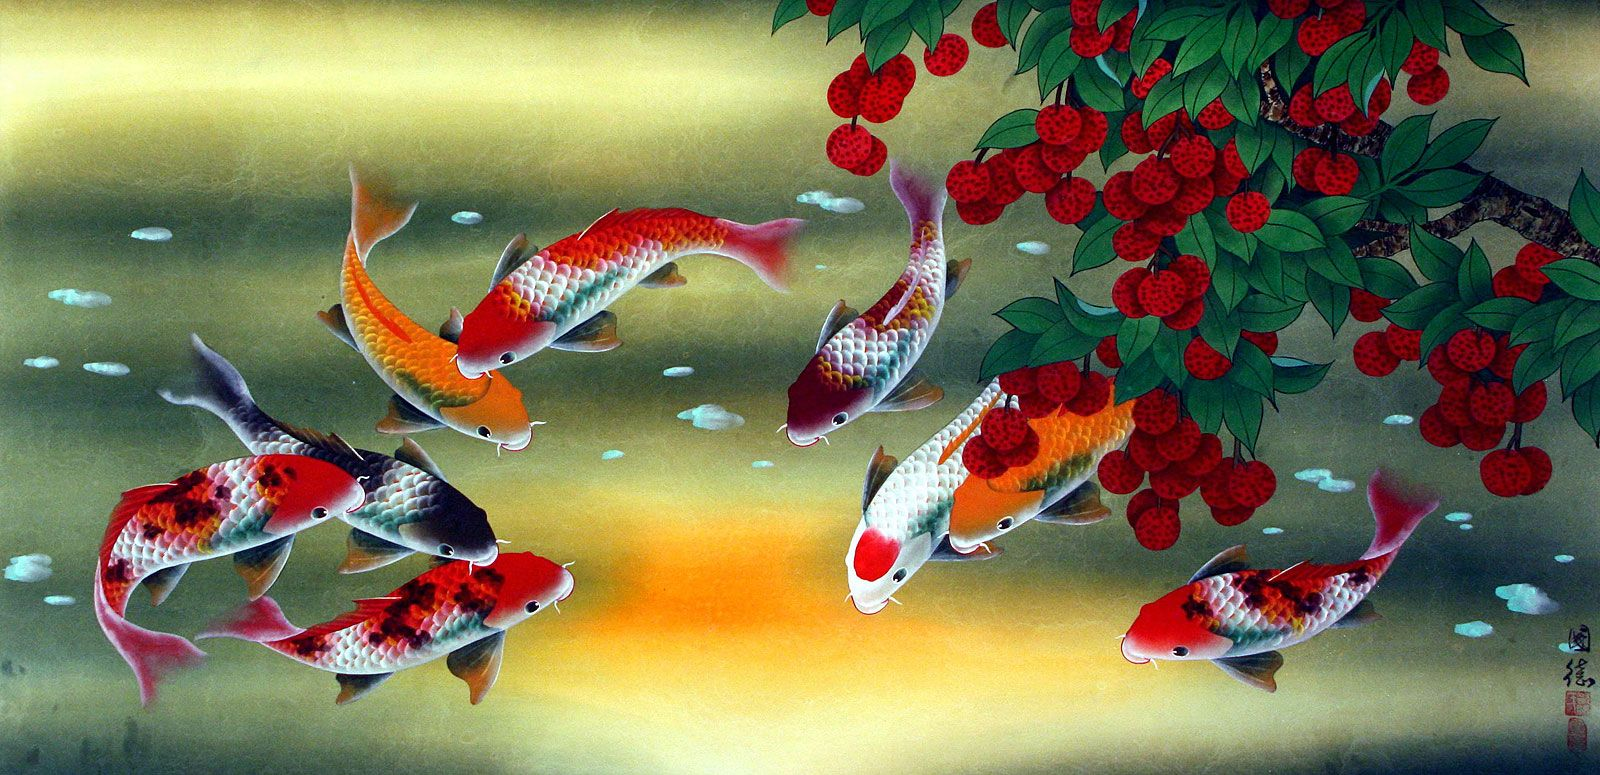 Fish artwork painting asian koi fish paintings for Koi artwork on canvas